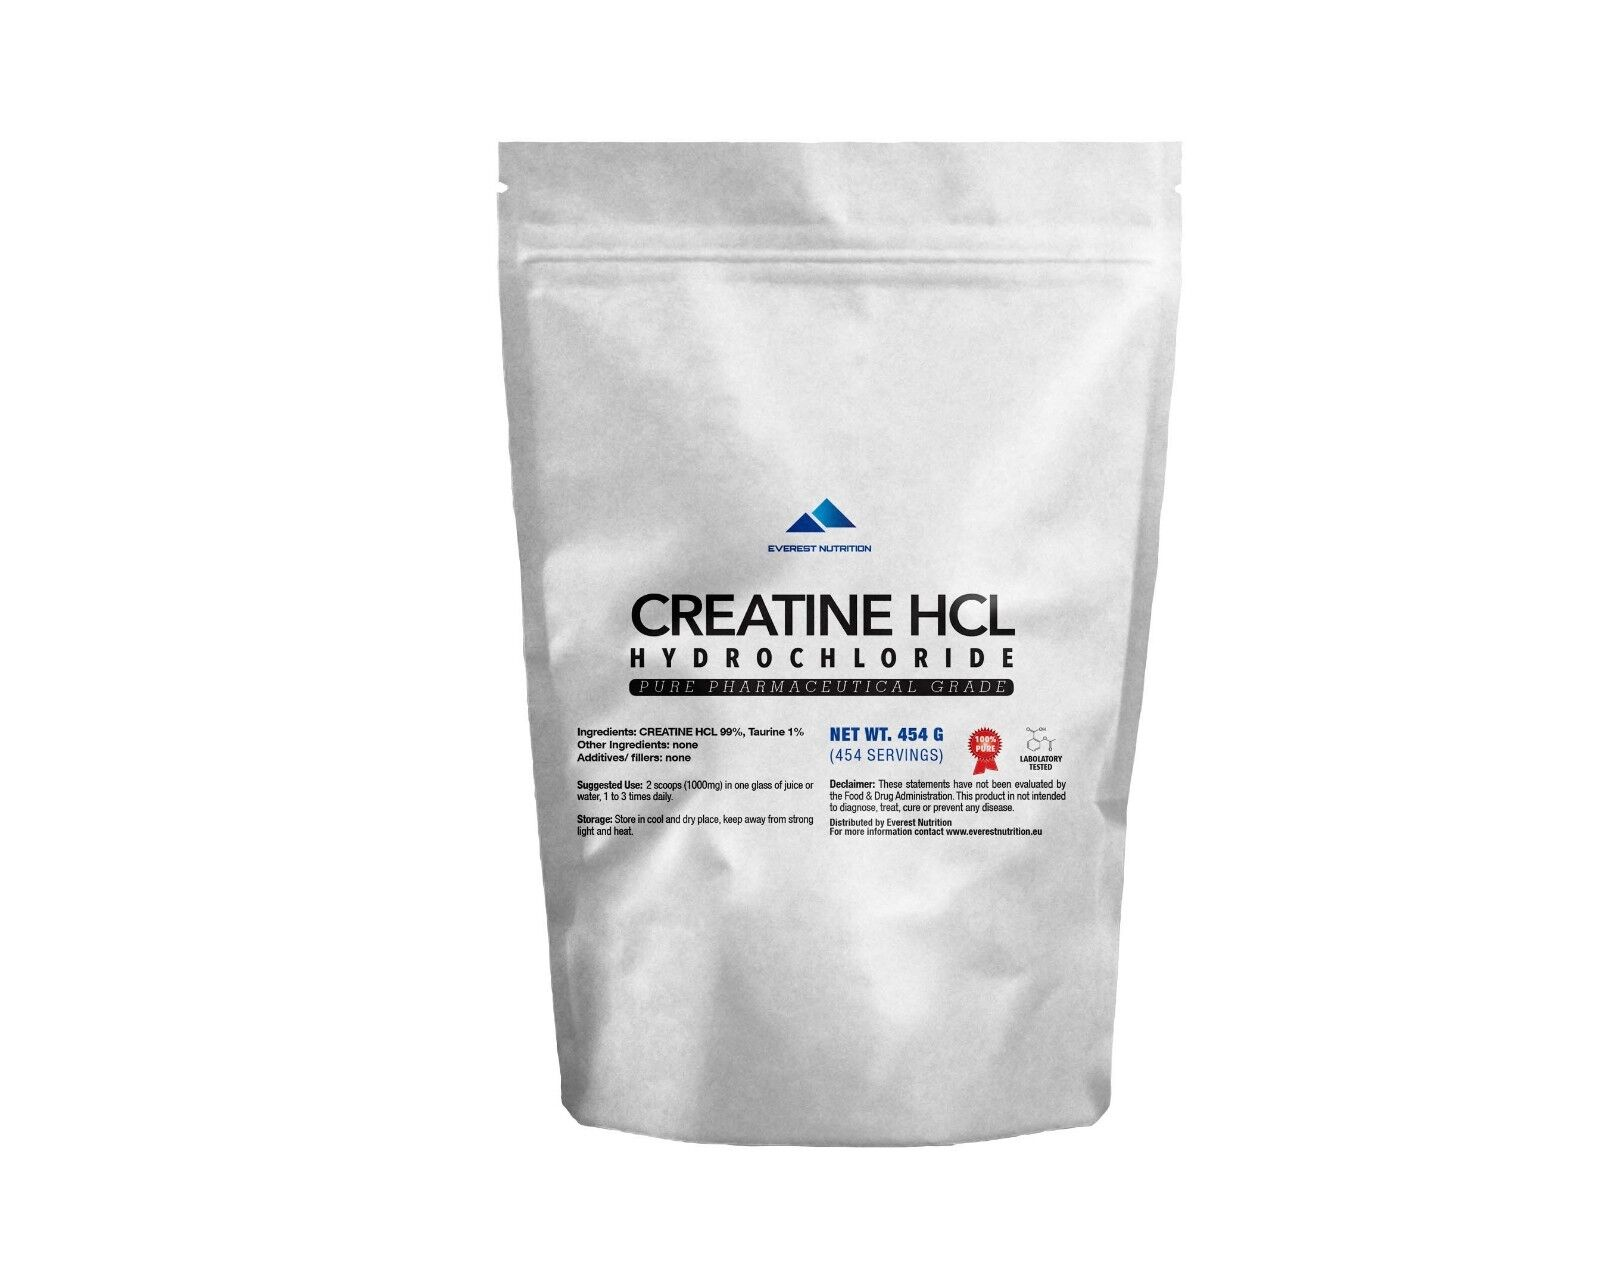 CREATINE BAUT HCL HYDROCHLORID GROßE ABSORPTION, BAUT CREATINE LEAN MUSCLE, POWER, STÄRKE eed34a